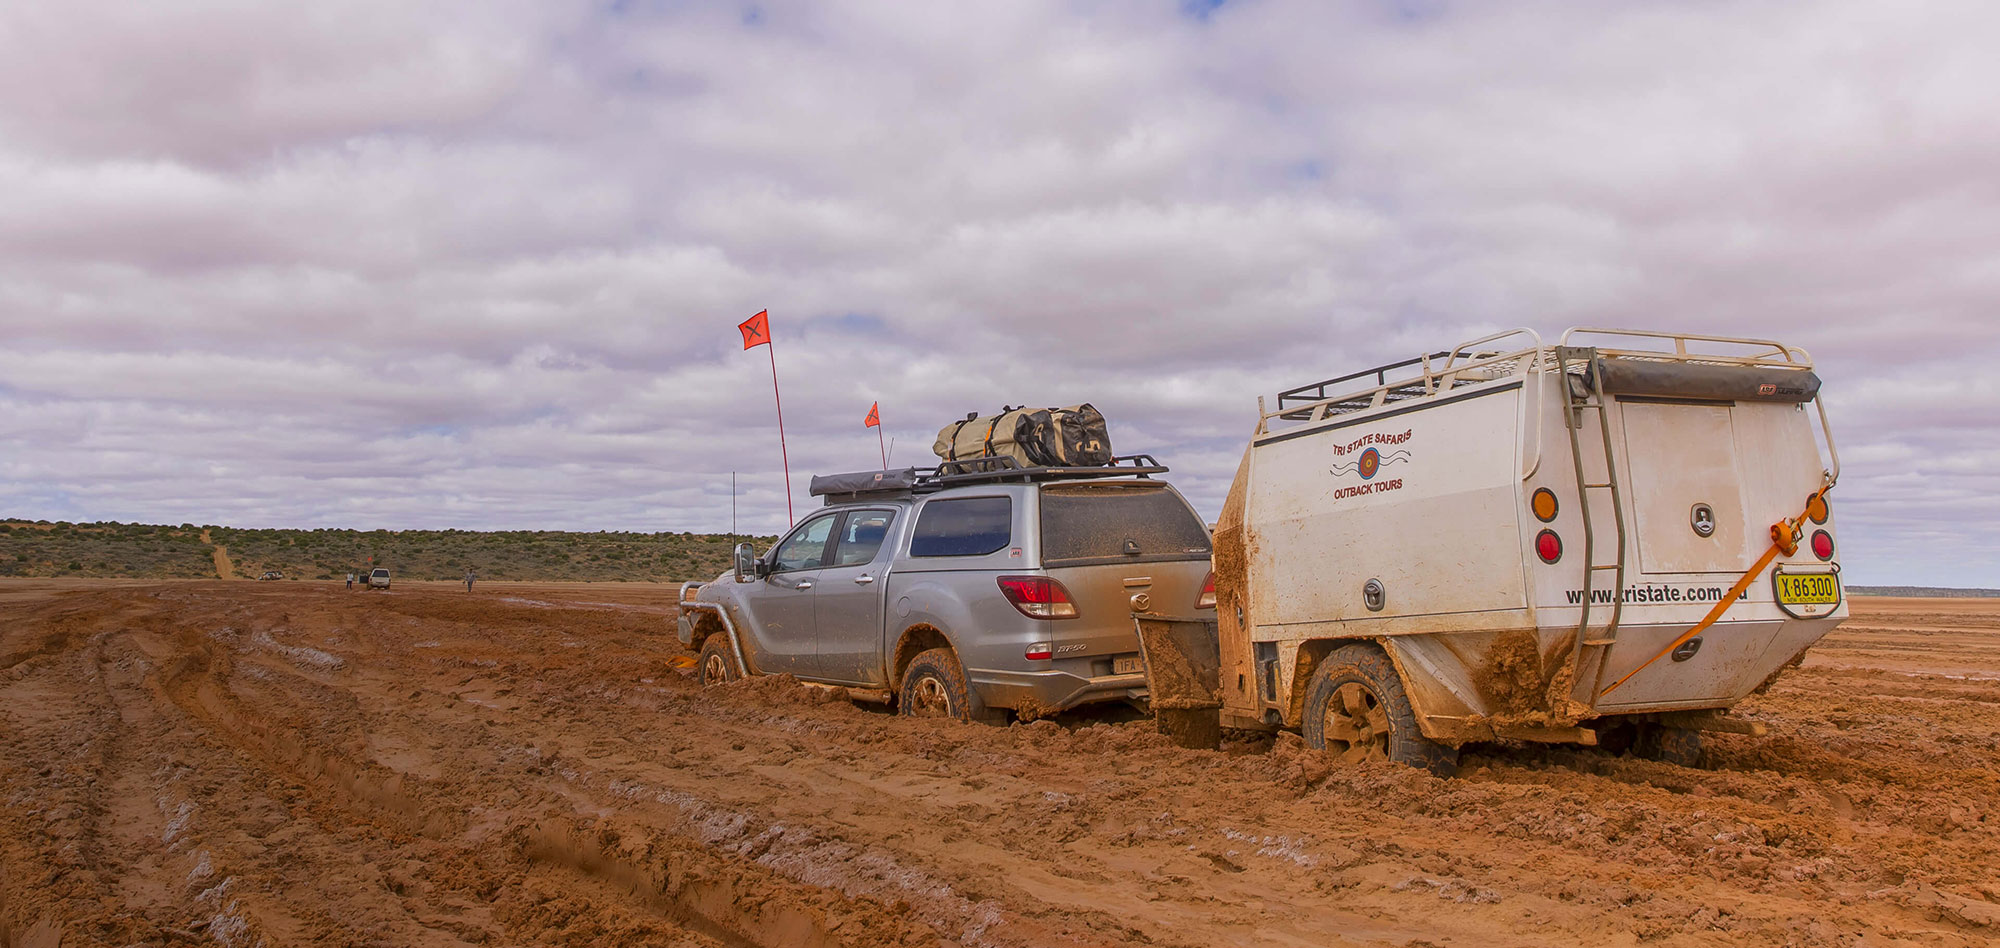 Two best mates travelling the NT in a Land-cruiser. What could be better?